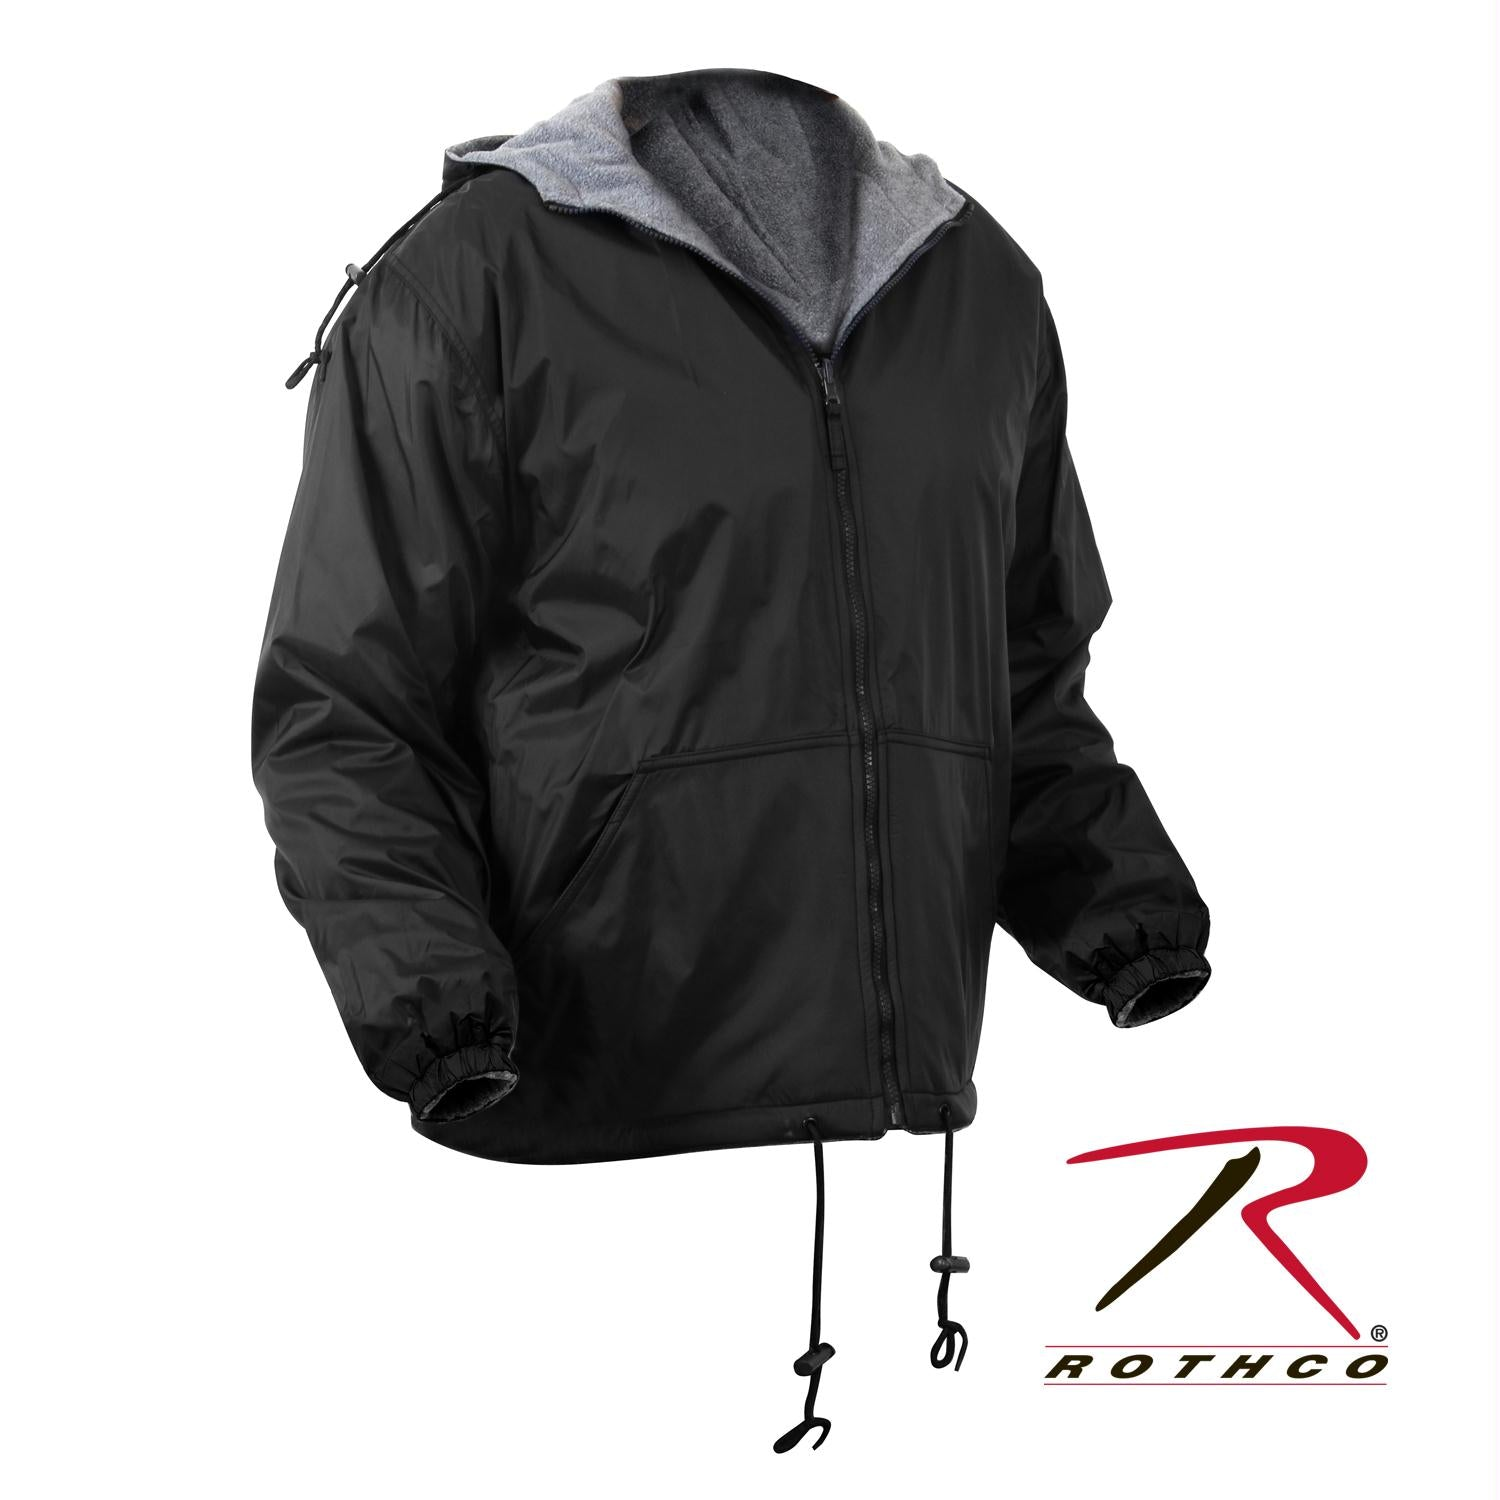 Rothco Reversible Lined Jacket With Hood - Black / 4XL